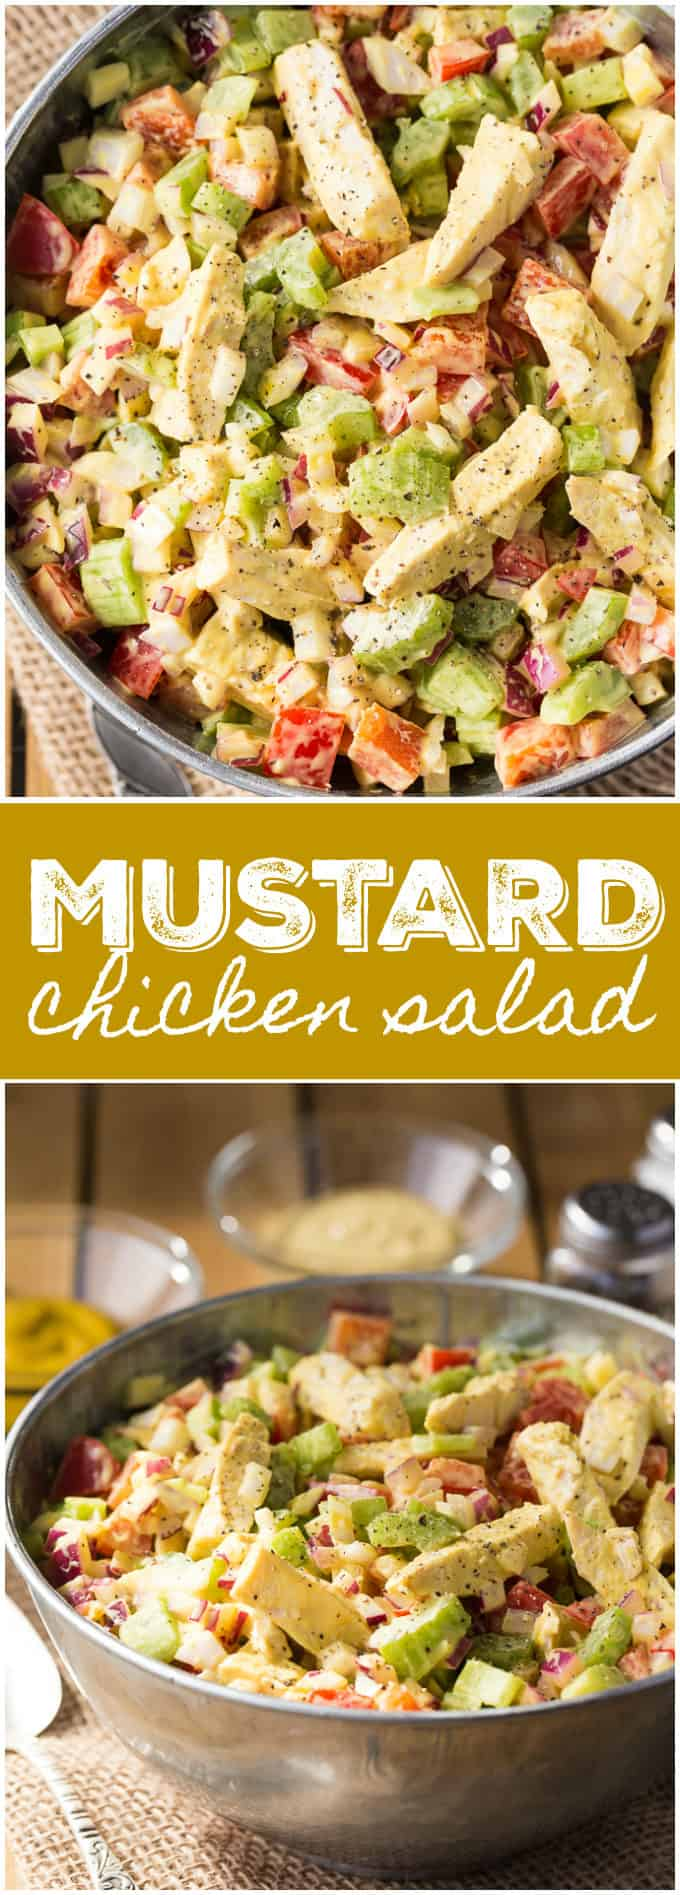 Mustard Chicken Salad - Healthy and full of delicious flavour and texture! Serve this simple salad at your next BBQ or picnic.